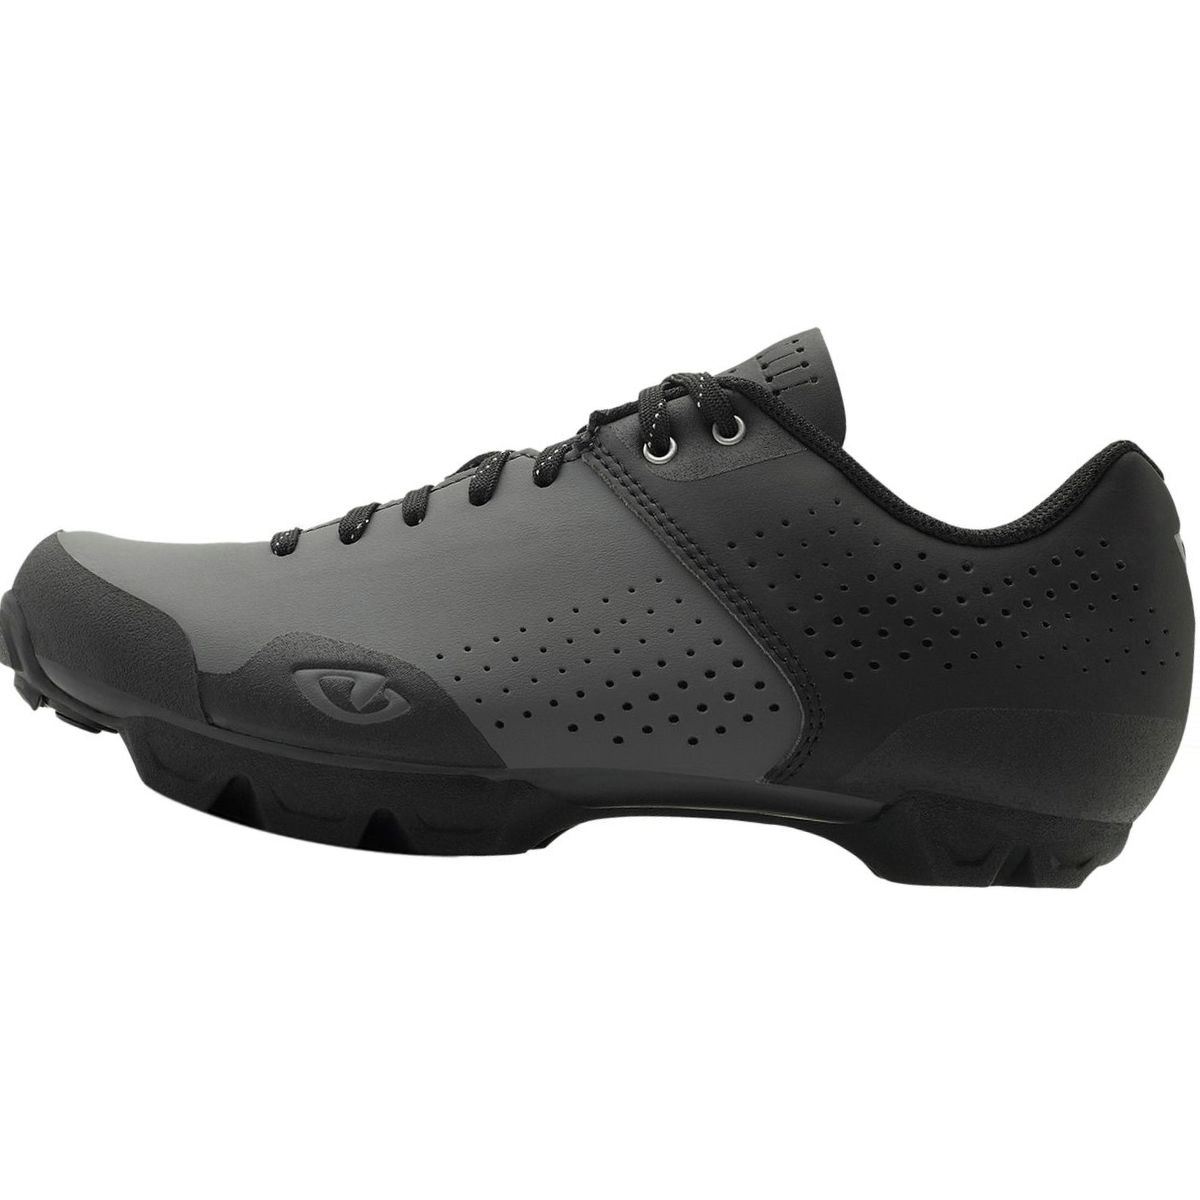 Giro Manta Lace Cycling Shoe - Women's